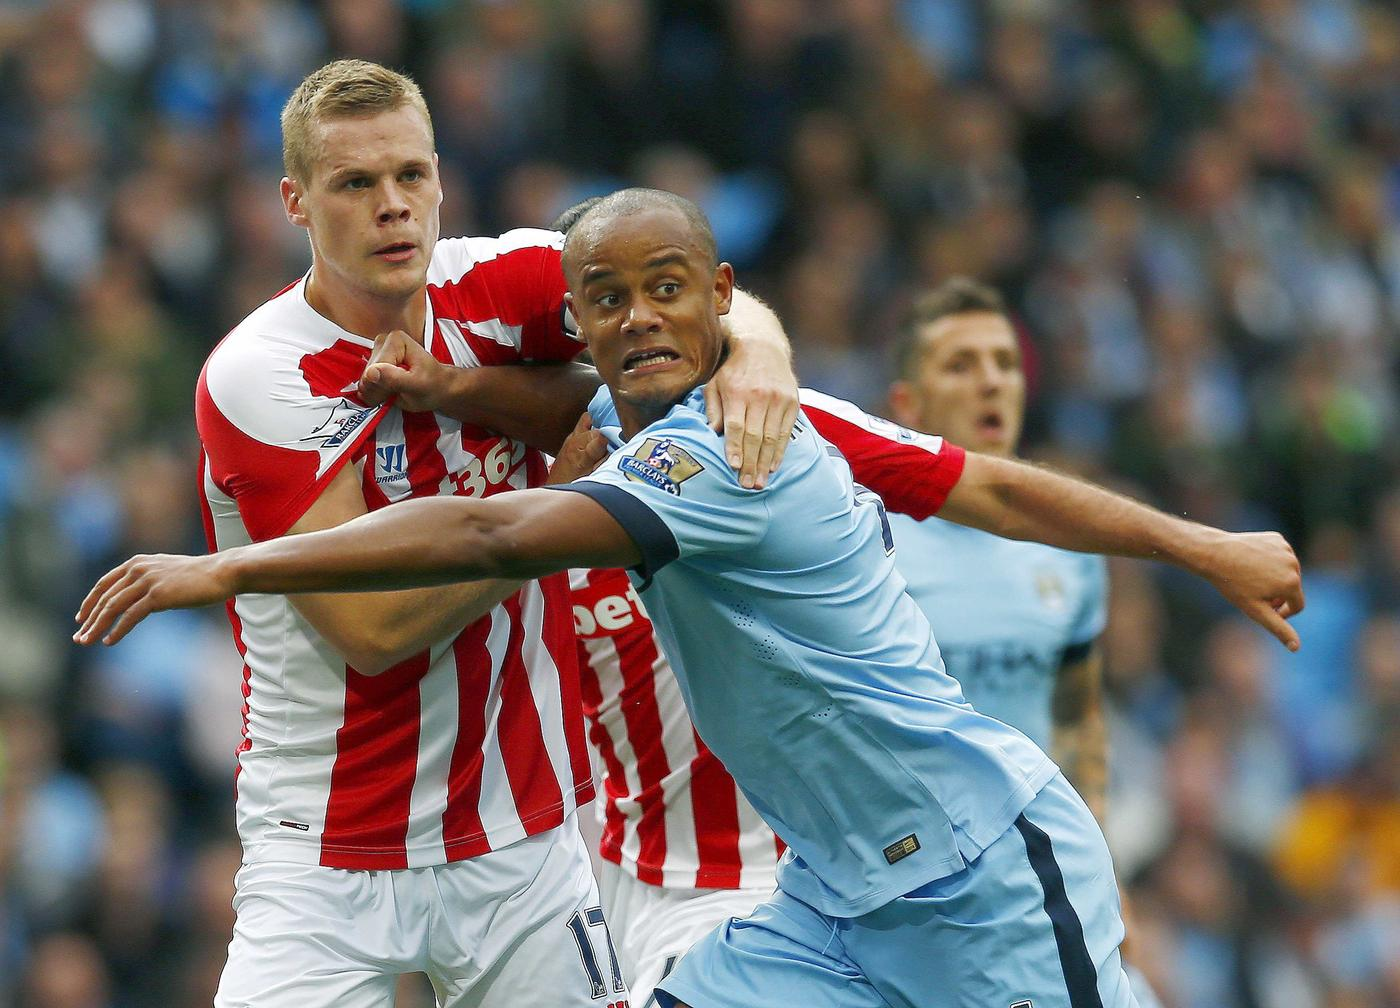 It's not just Stoke City who are physical in football